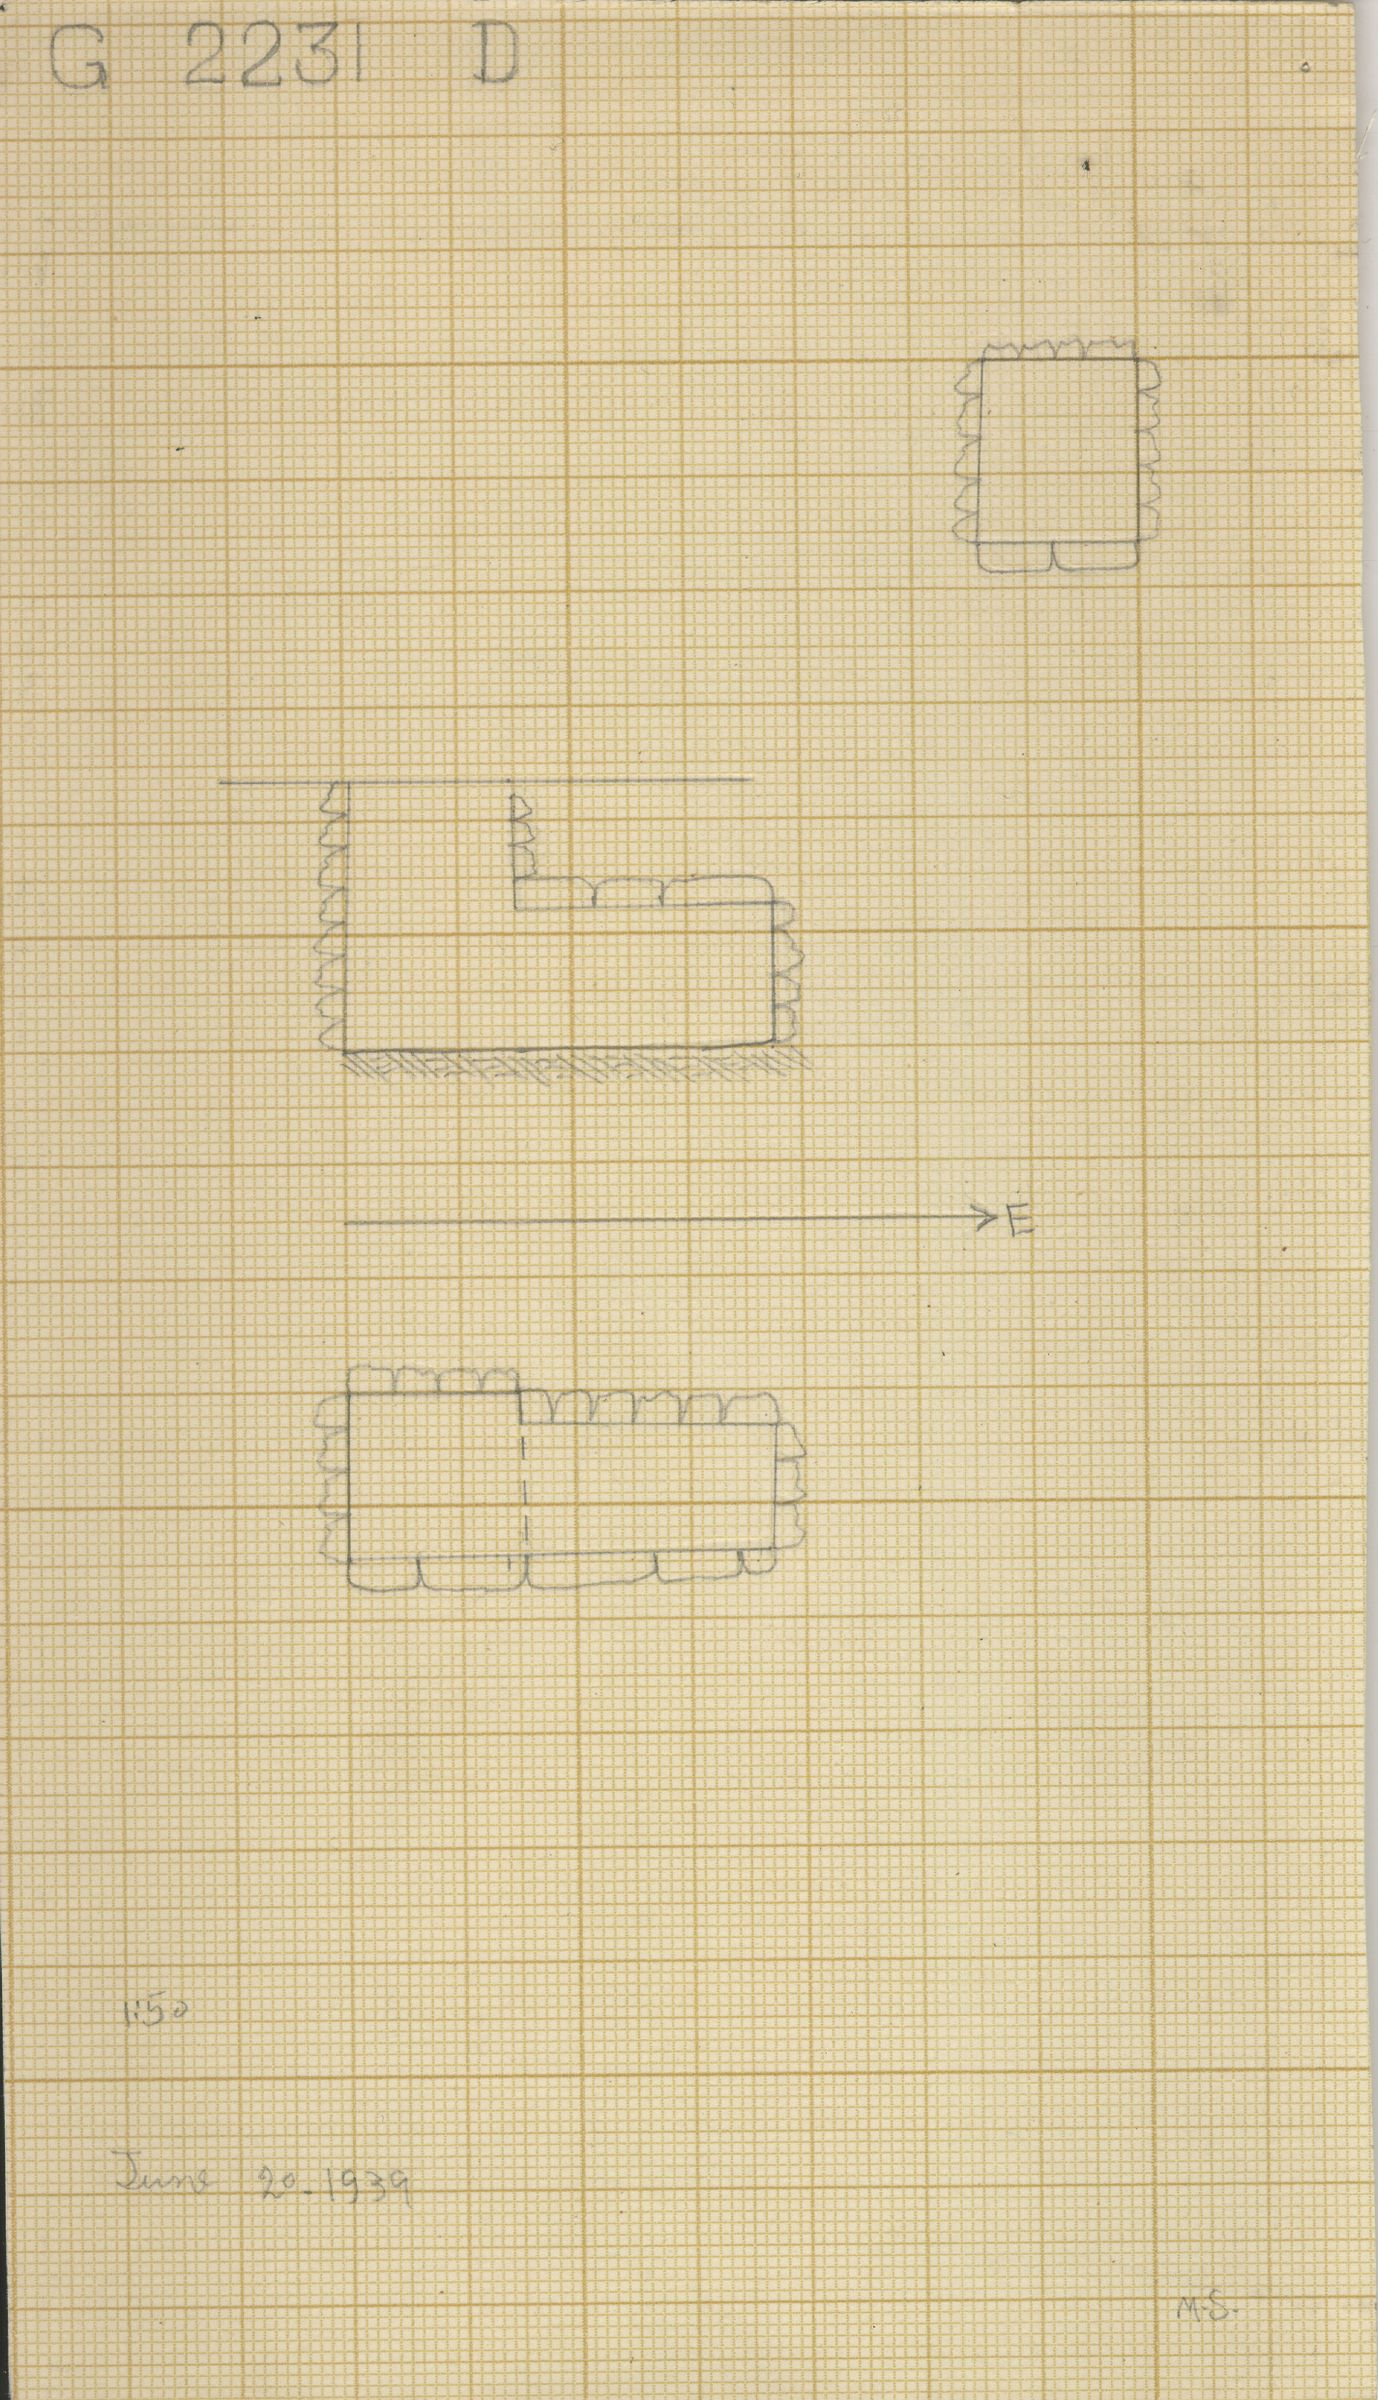 Maps and plans: G 2230+2231: G 2231, Shaft D